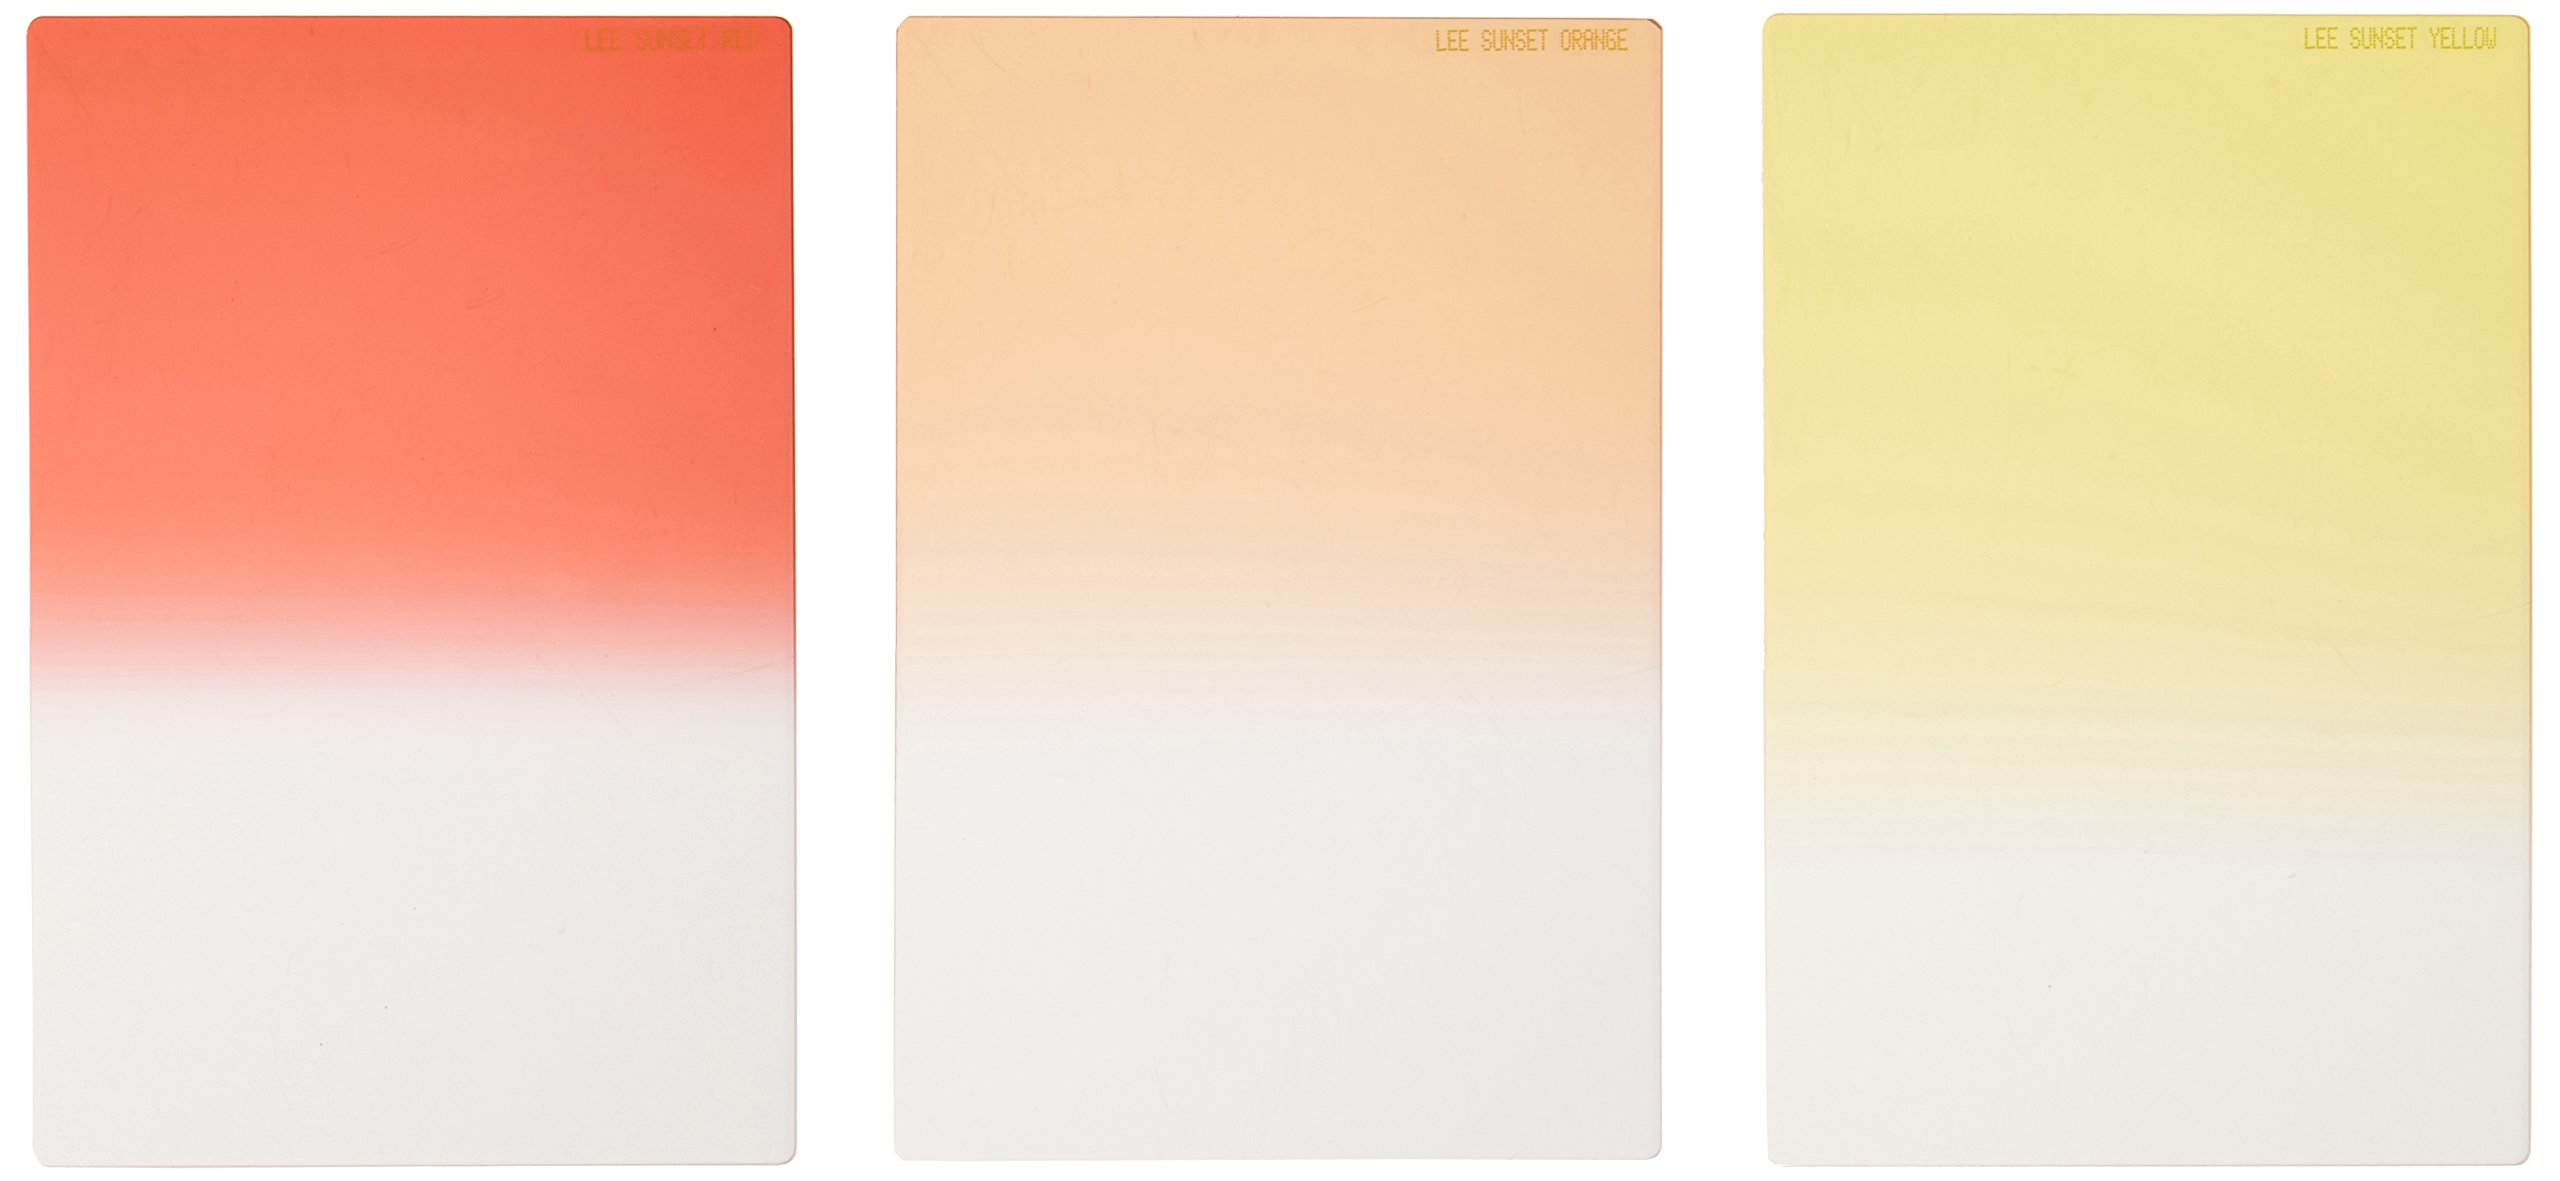 Lee Sunset Filter Graduated Set (100x150mm Resin) [FHSUNS ] by Lee Filters